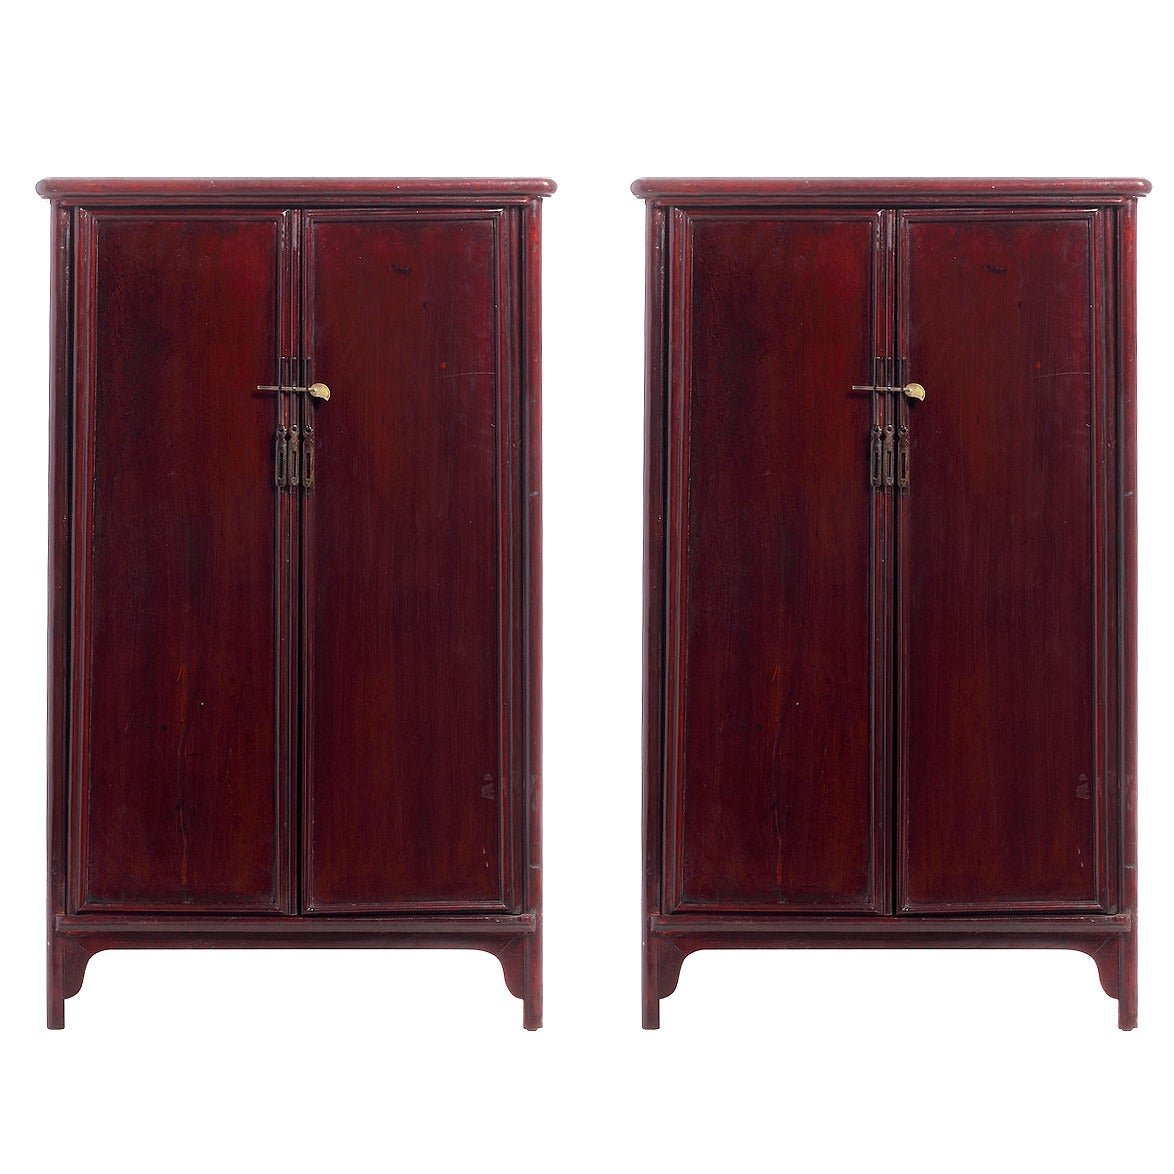 Pair of Chinese Side Cabinets with Red Patina from the Early 20th Century